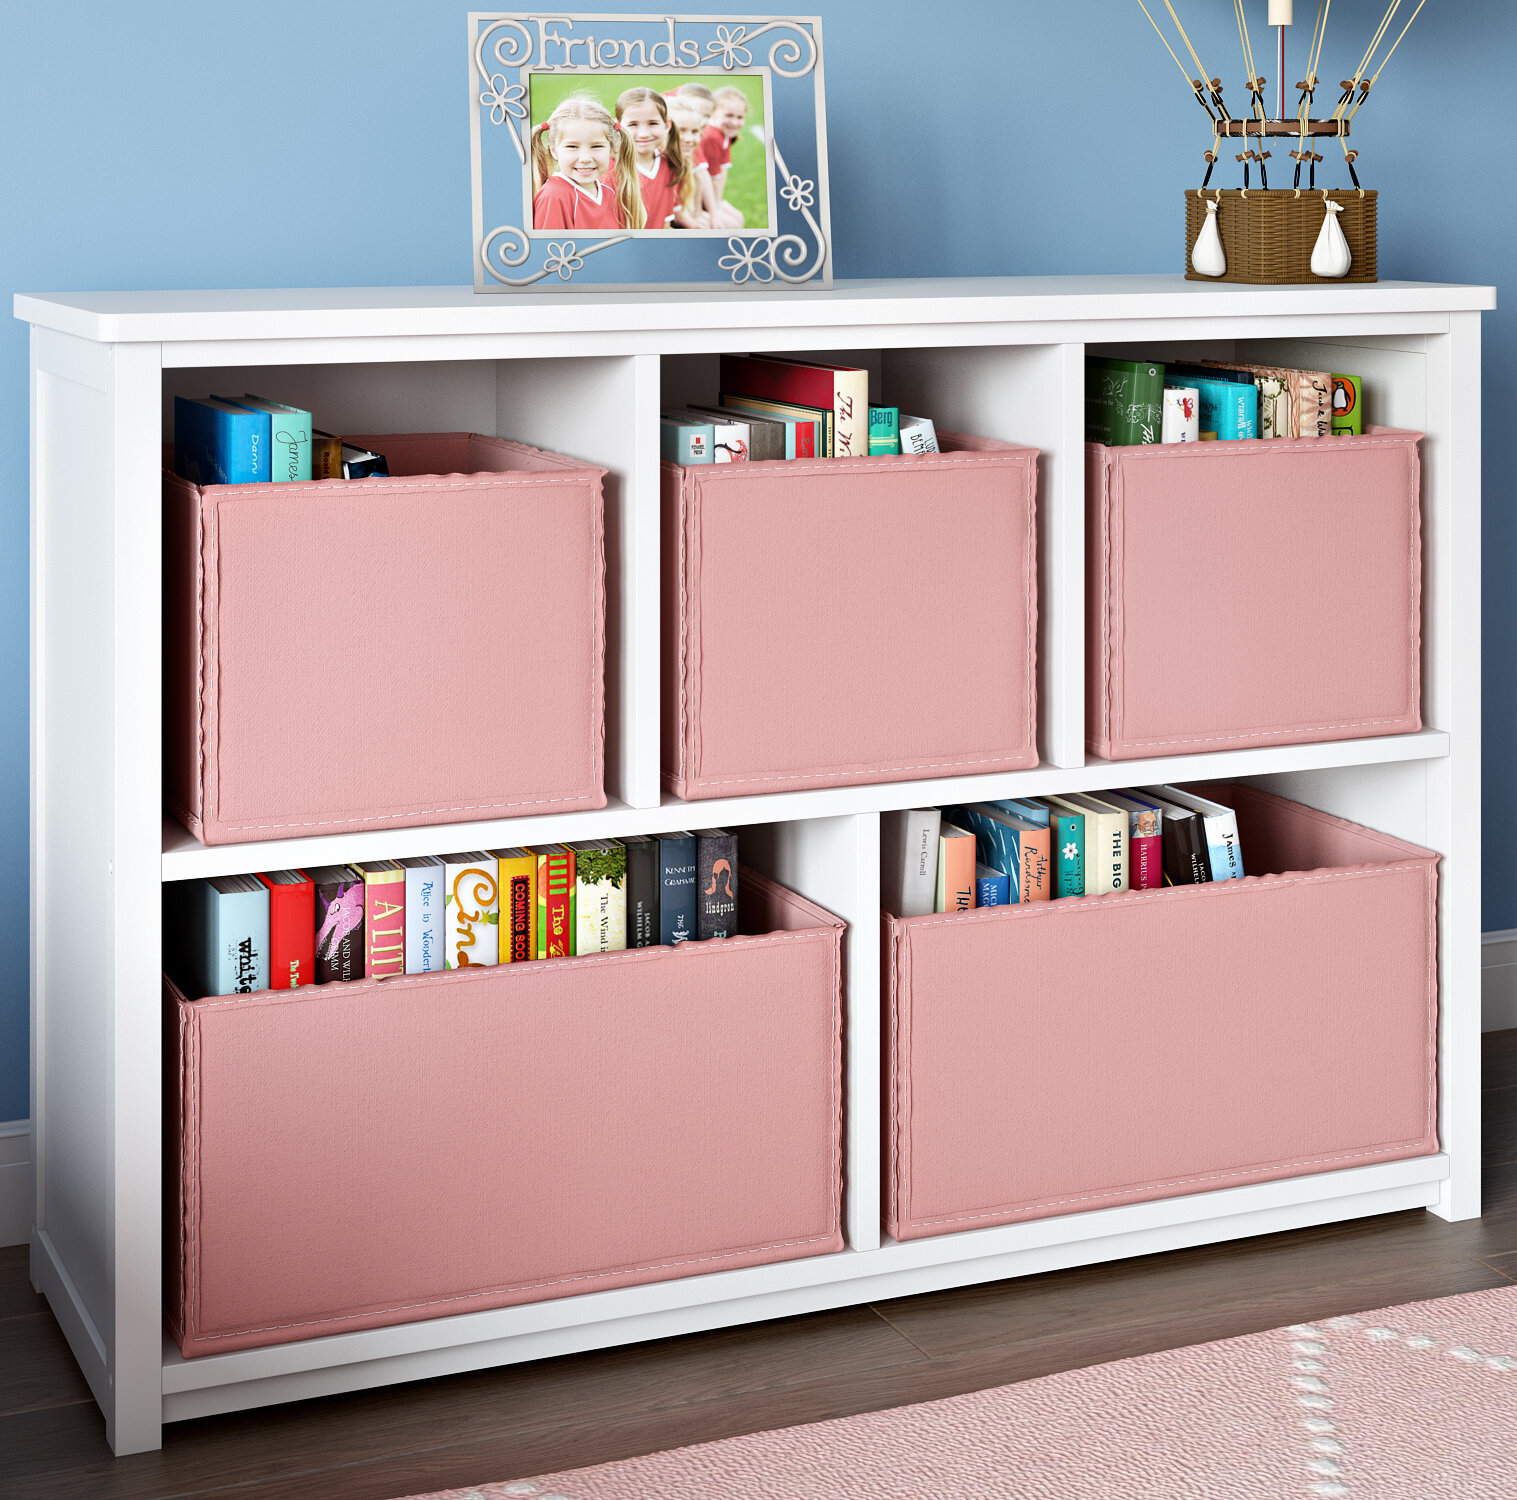 also bookshelflove home above amazing best images childrens bookcase quote with wall for and bar shelves smart decorating bookcases mounted bookshelves good office wide kids gallery the ideas